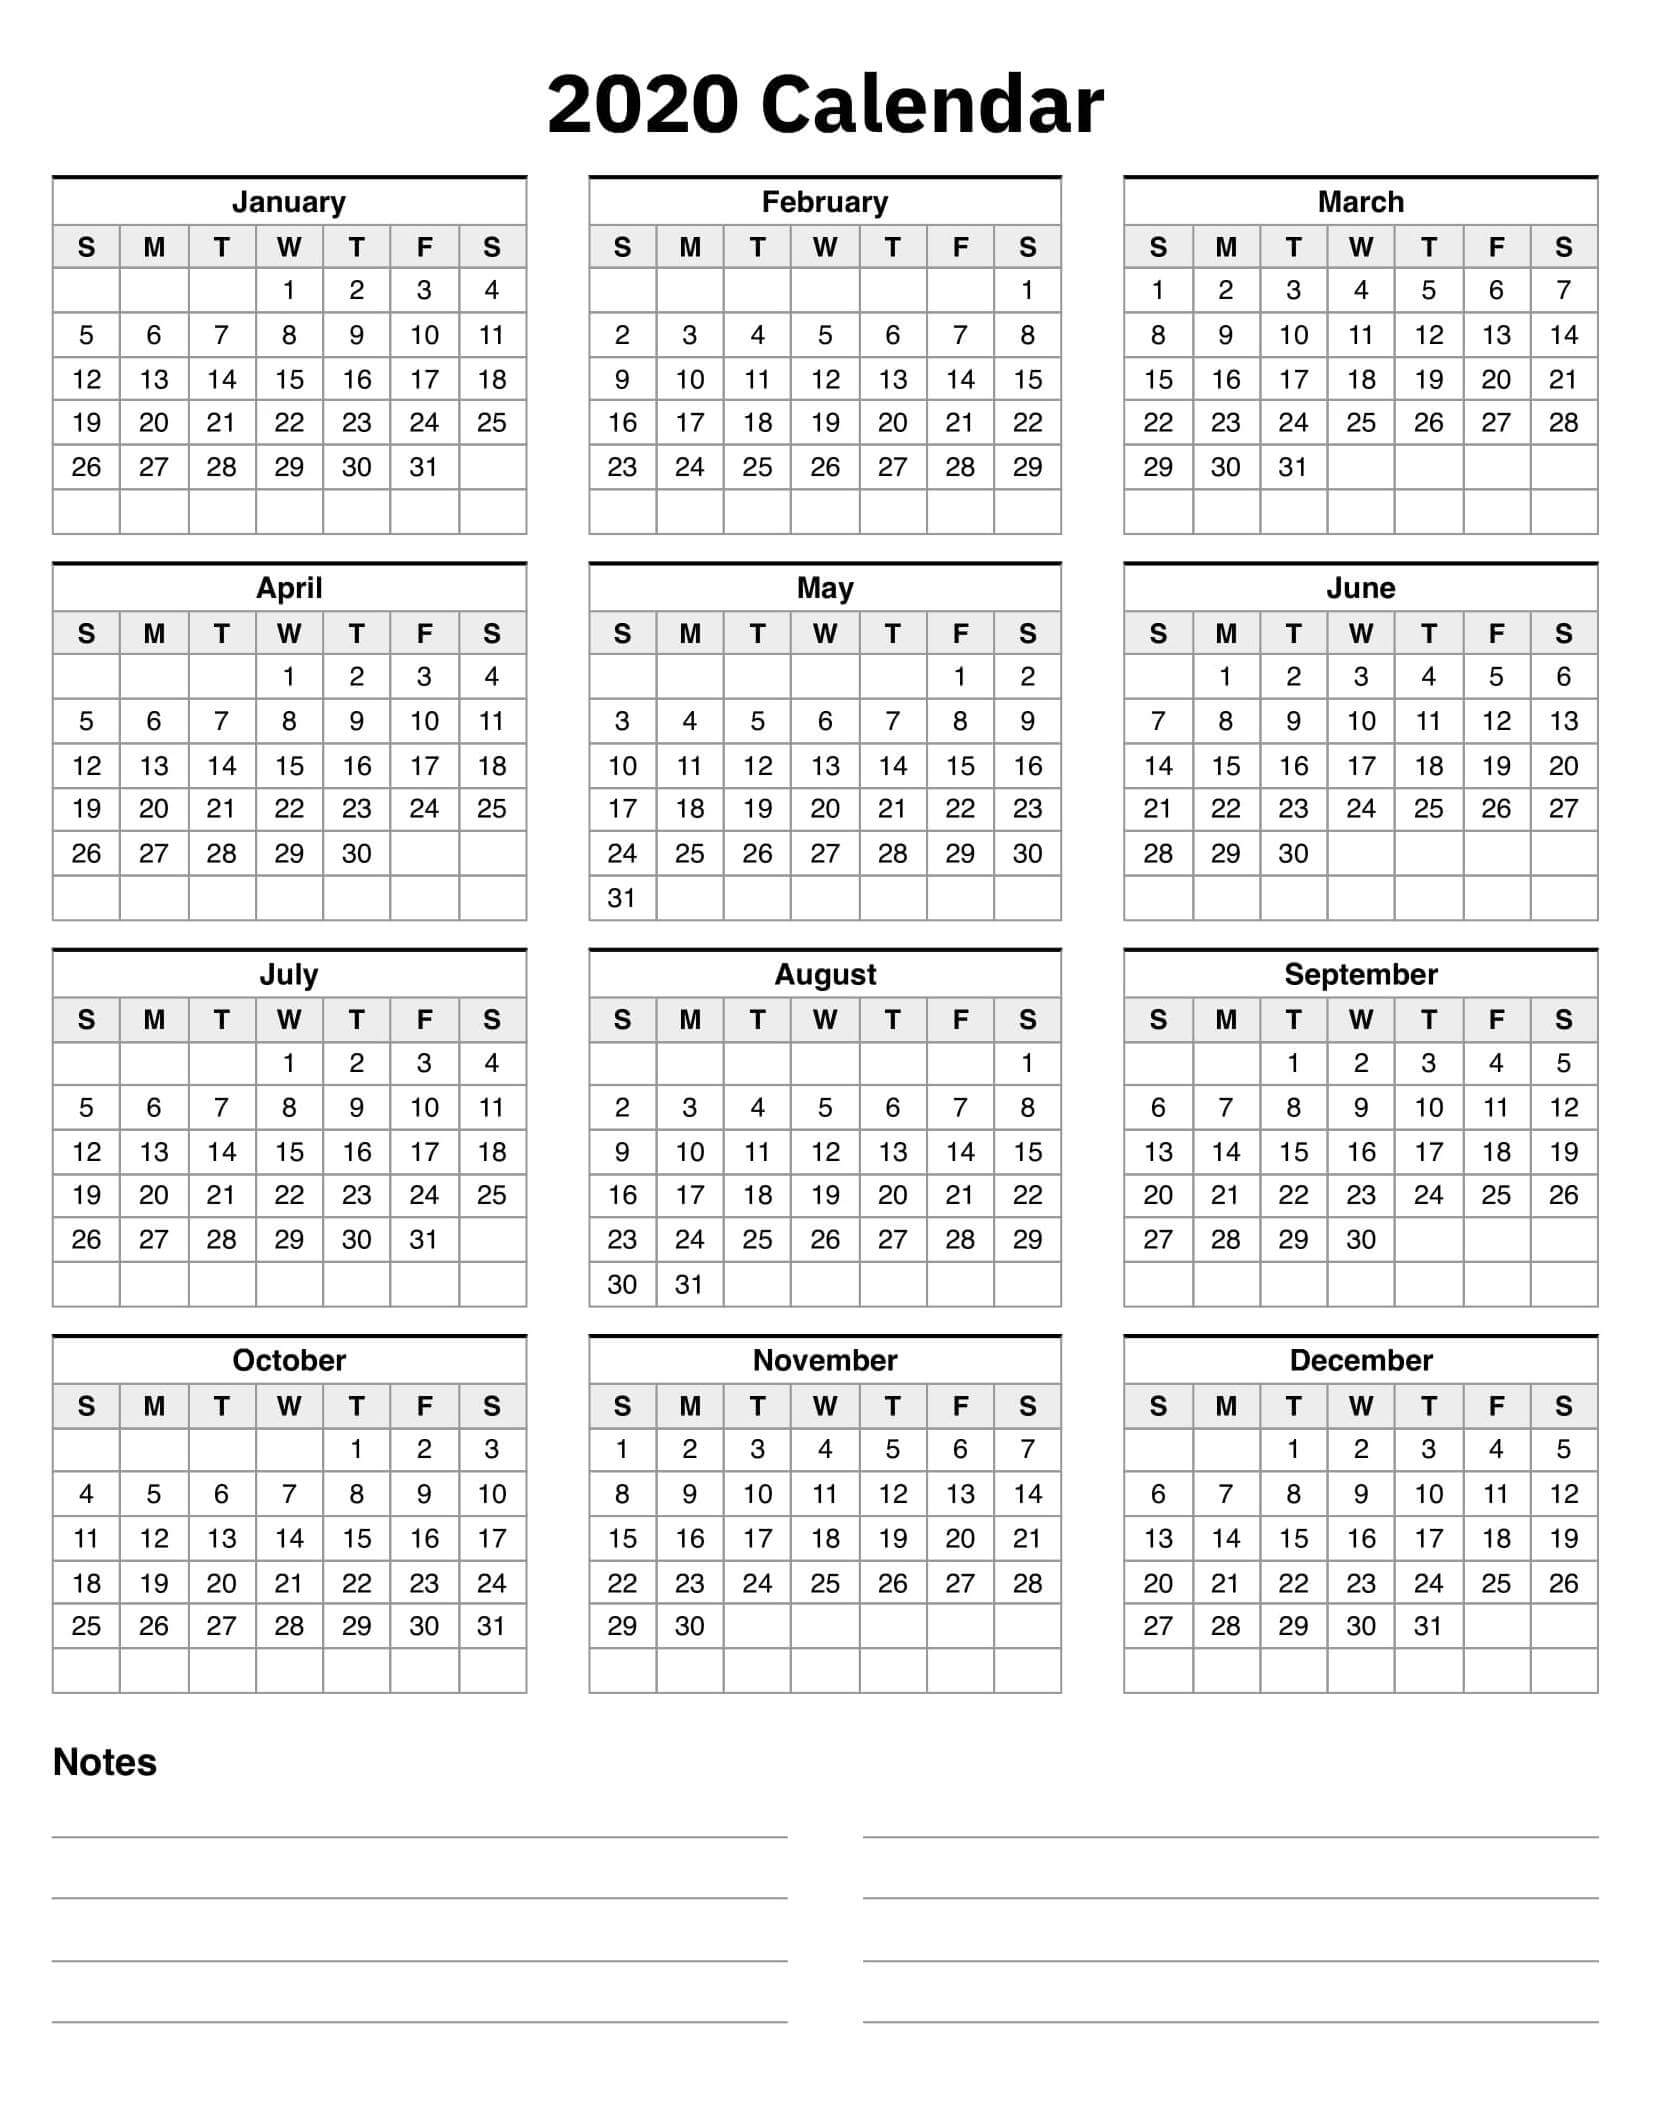 Colorful Yearly Calendar Template With Notes 2020 Word - Set in 2020 At A Glance Calendar Template